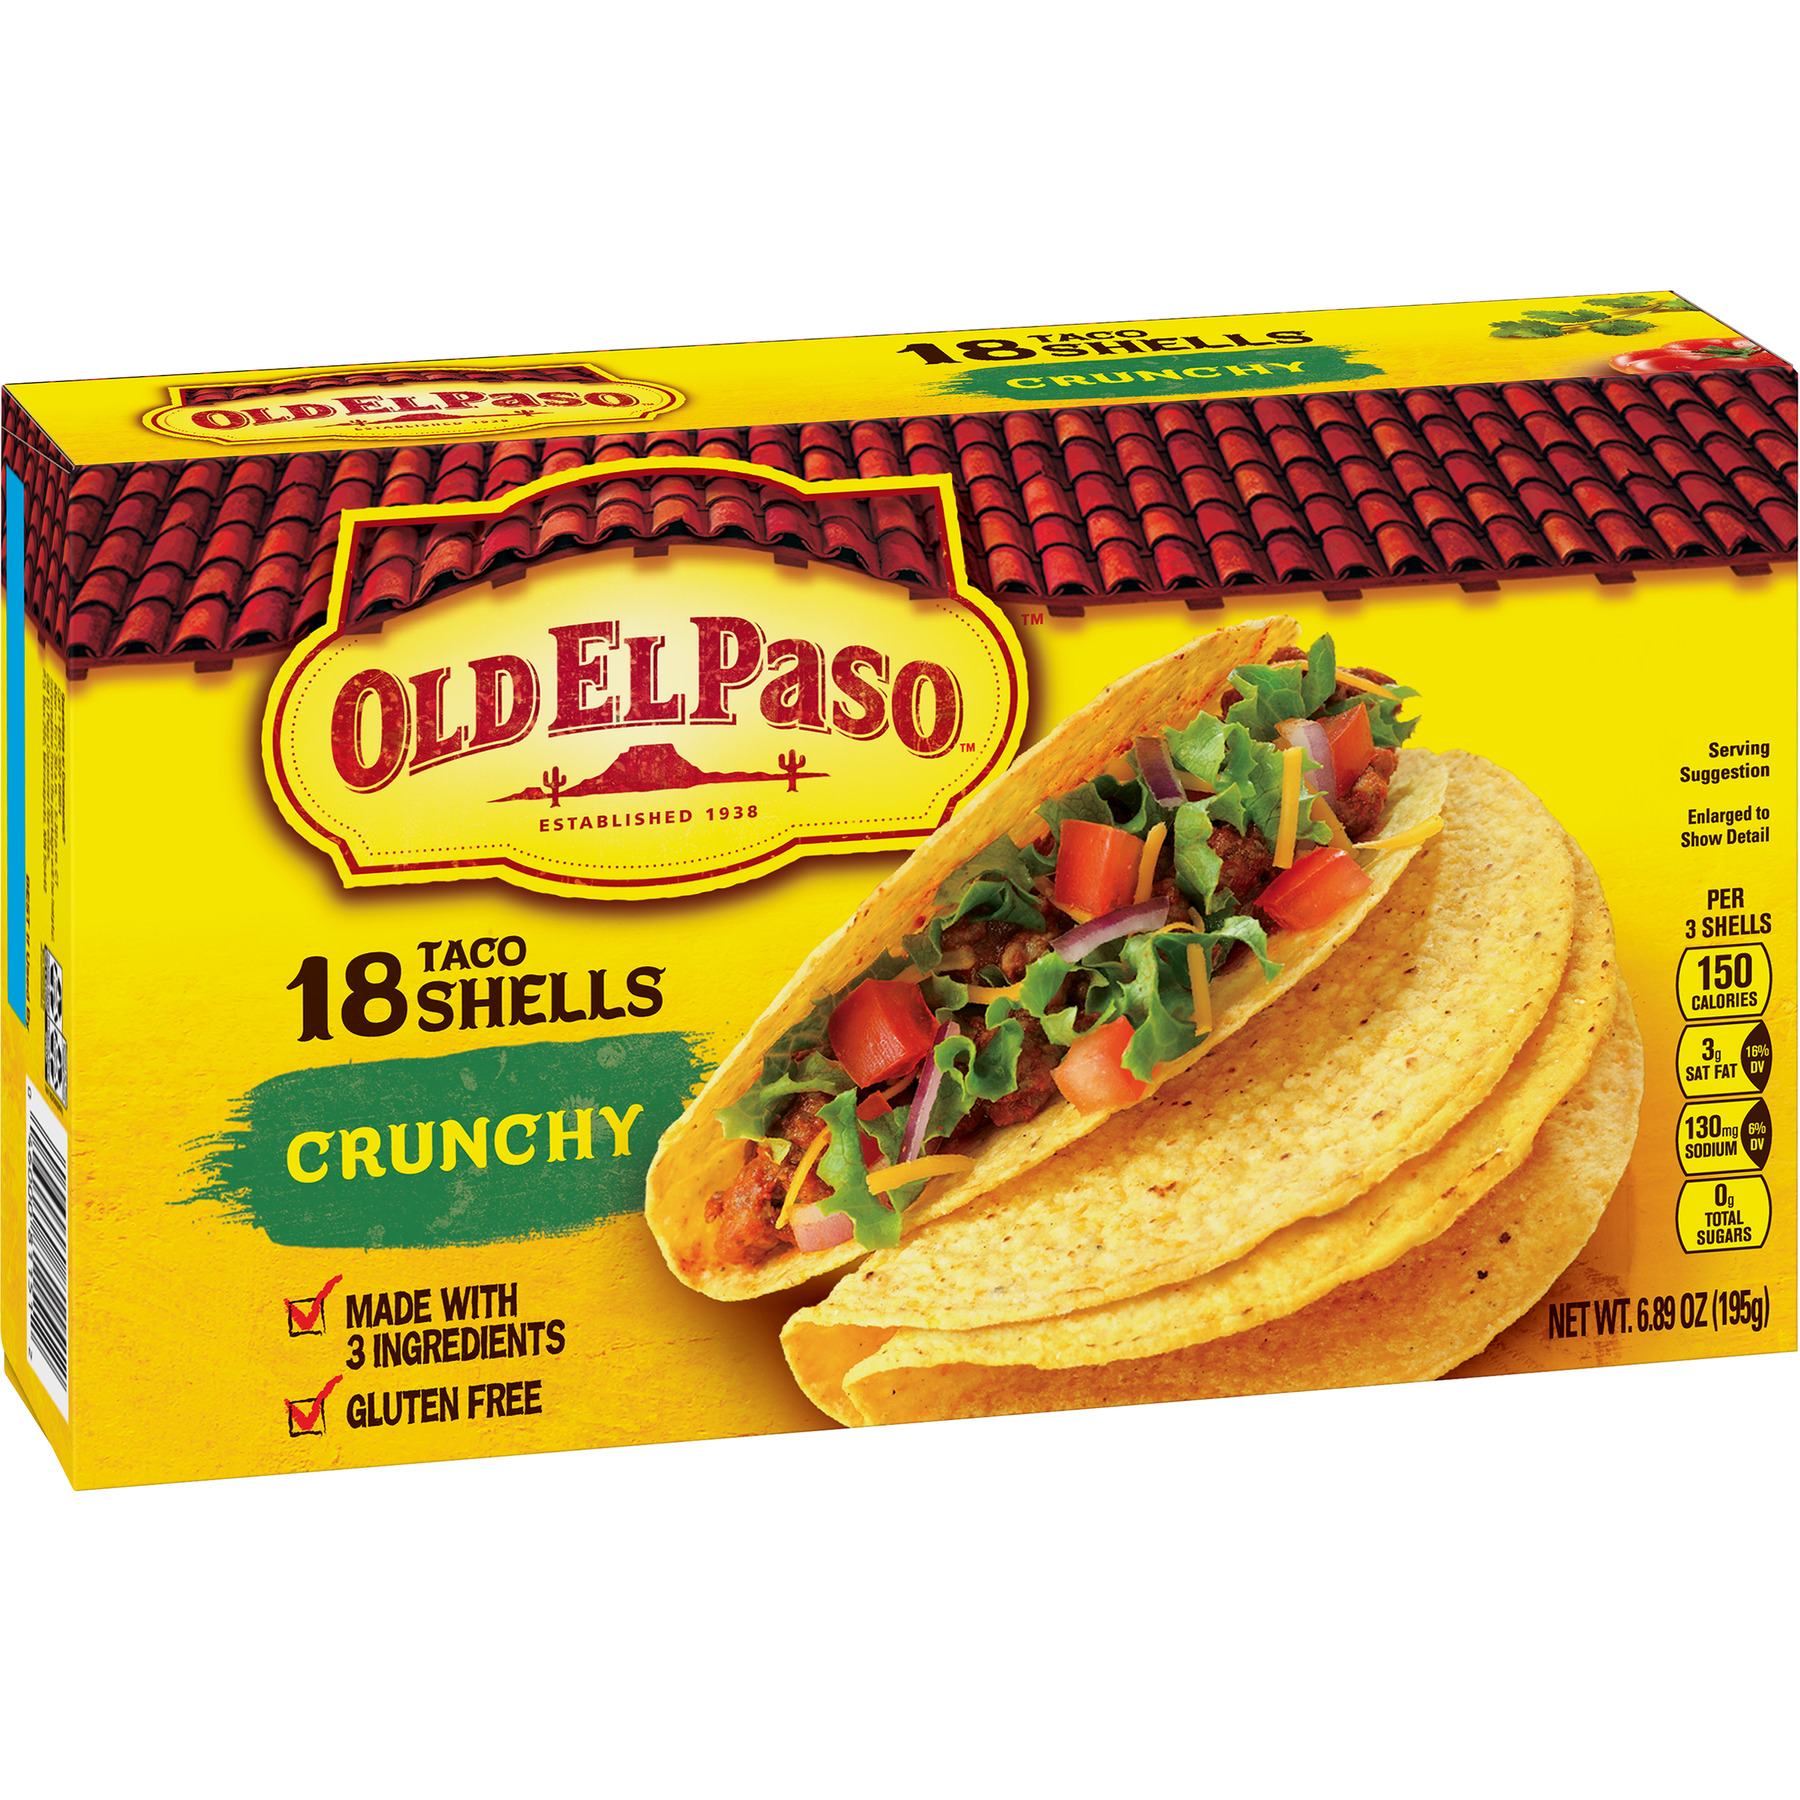 Old El Paso Crunchy Shells, 6.89 oz, 18 Count Box